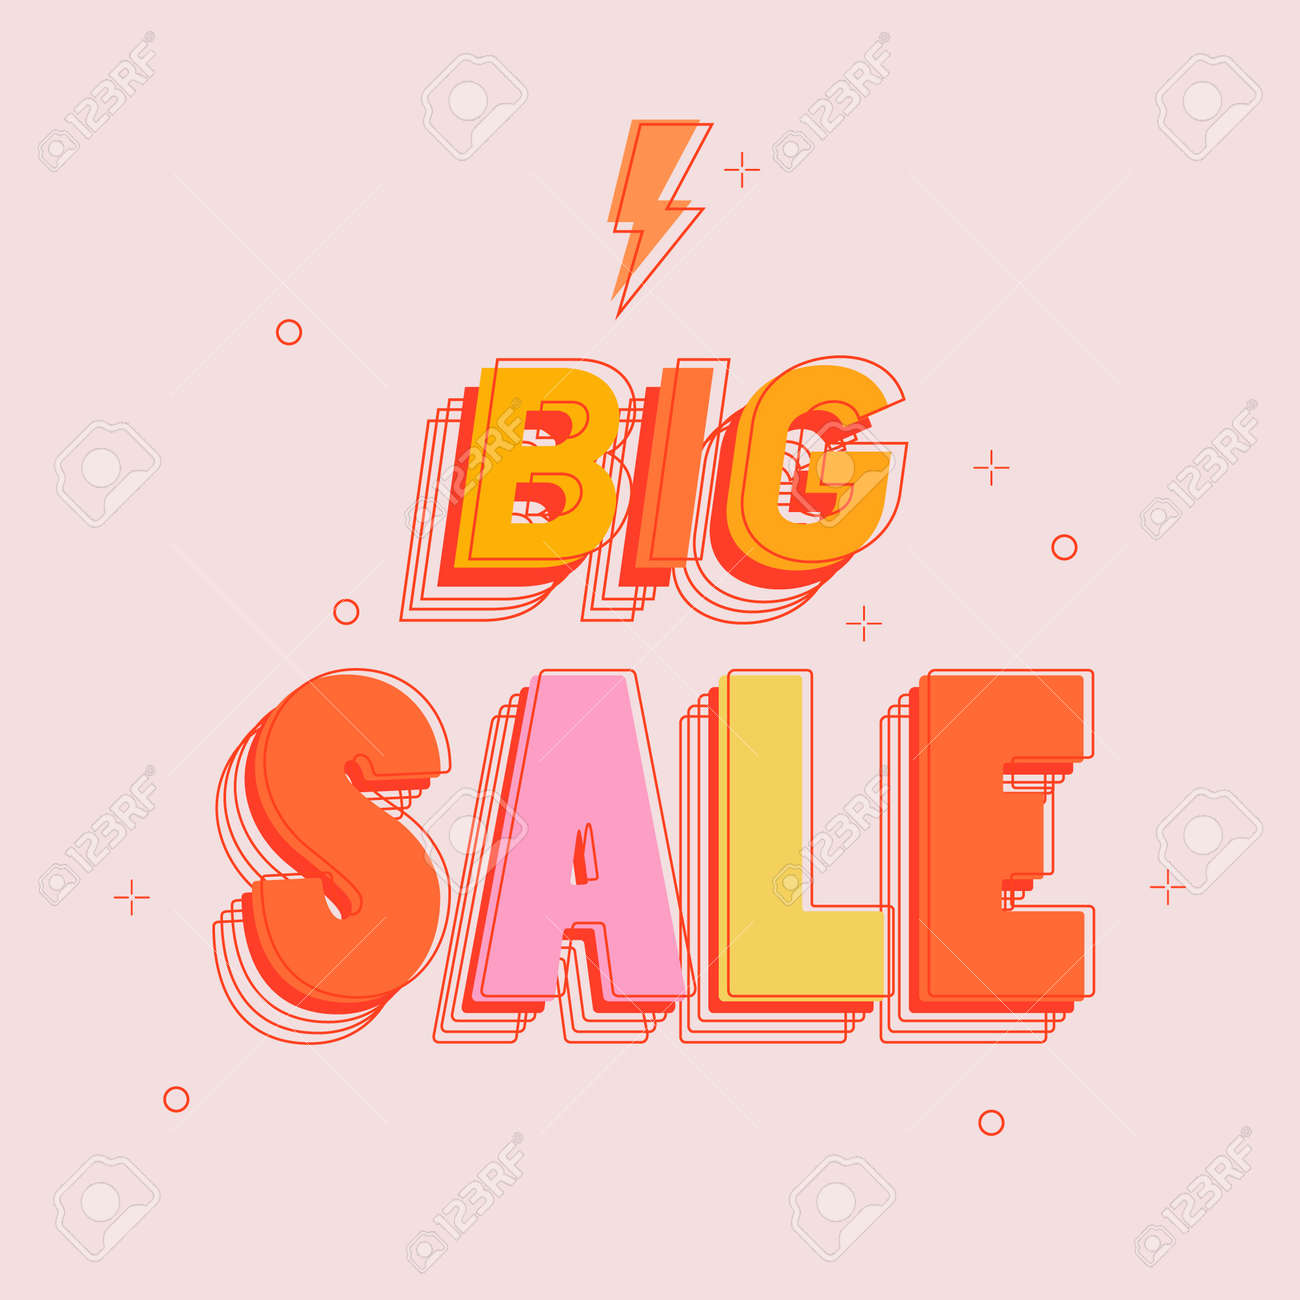 Big Sale and special offer. Special offer. Discount on the product. Trendy geometric figures wallpaper in a modern material design style. Colored banner. Vector illustration - 172746201